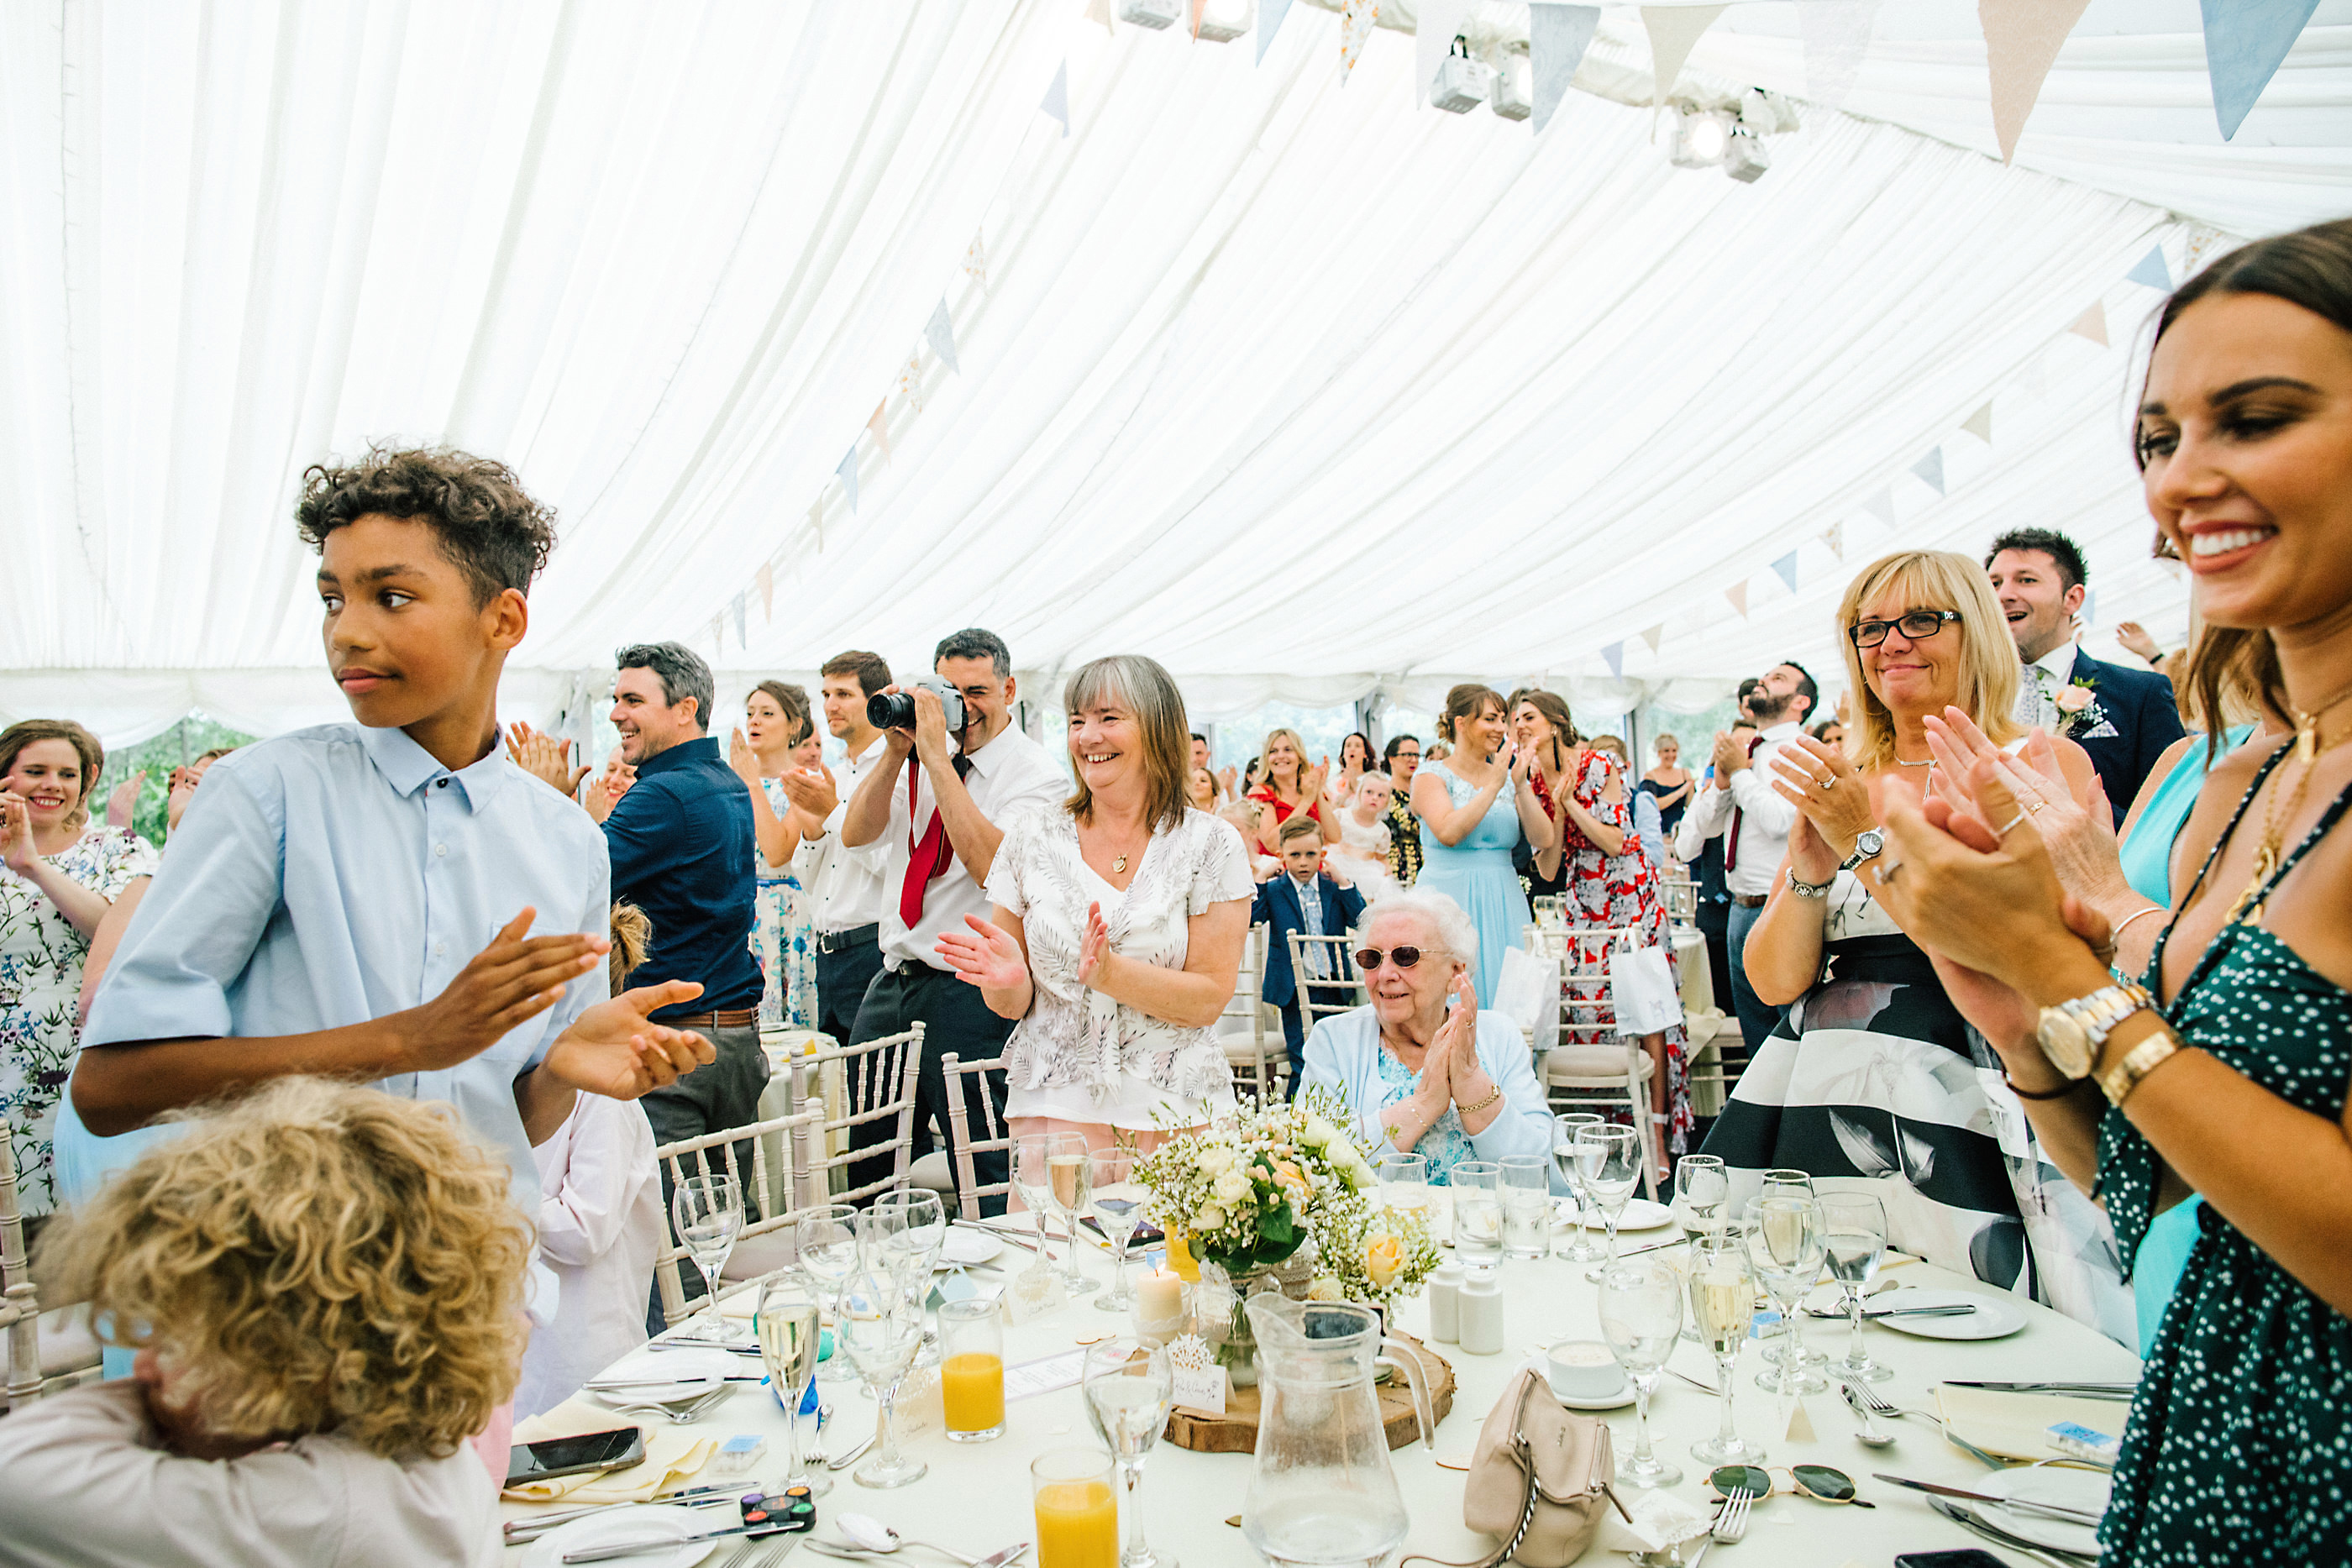 guests clapping at wedding